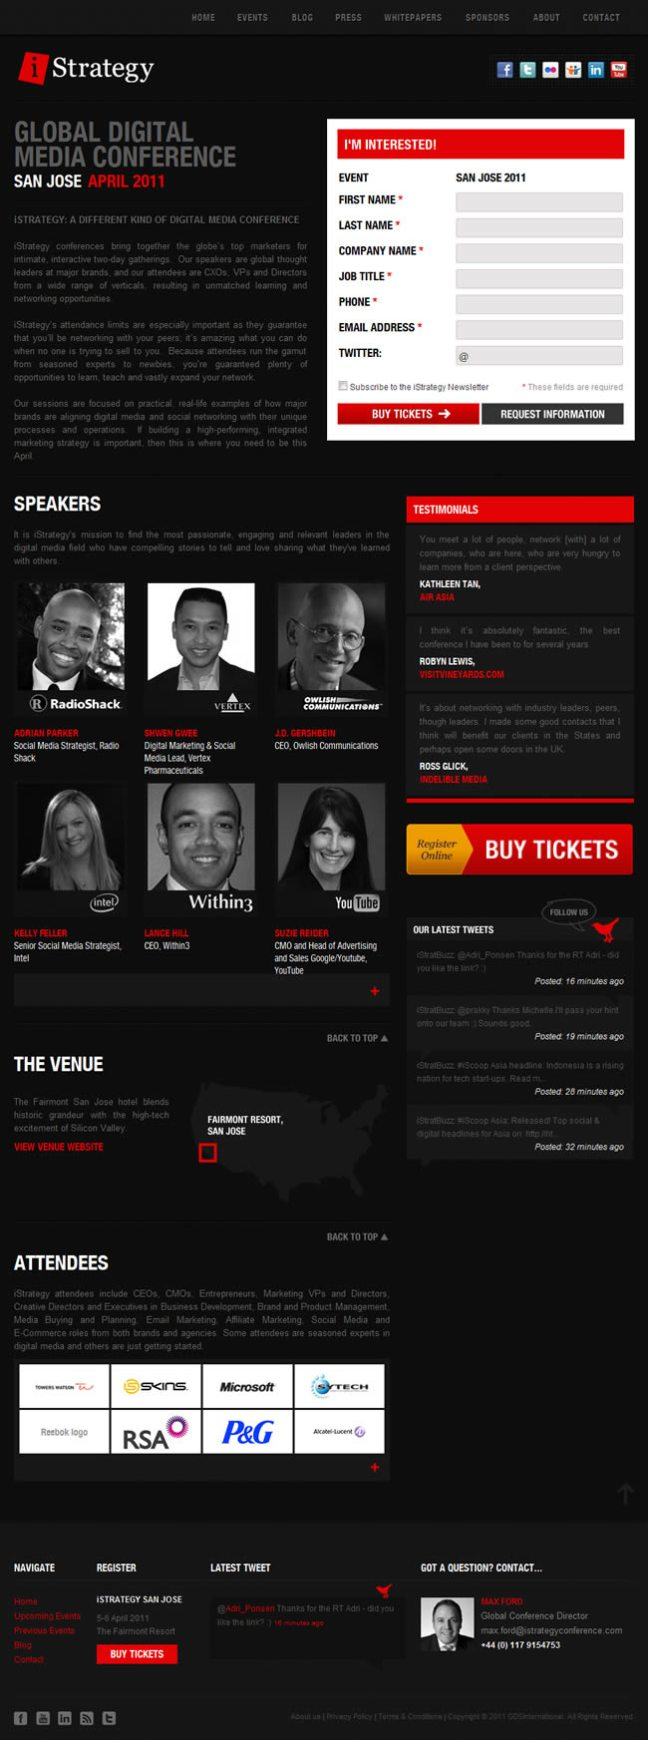 iStrategy Global Digital Media Conference landing page design exammple